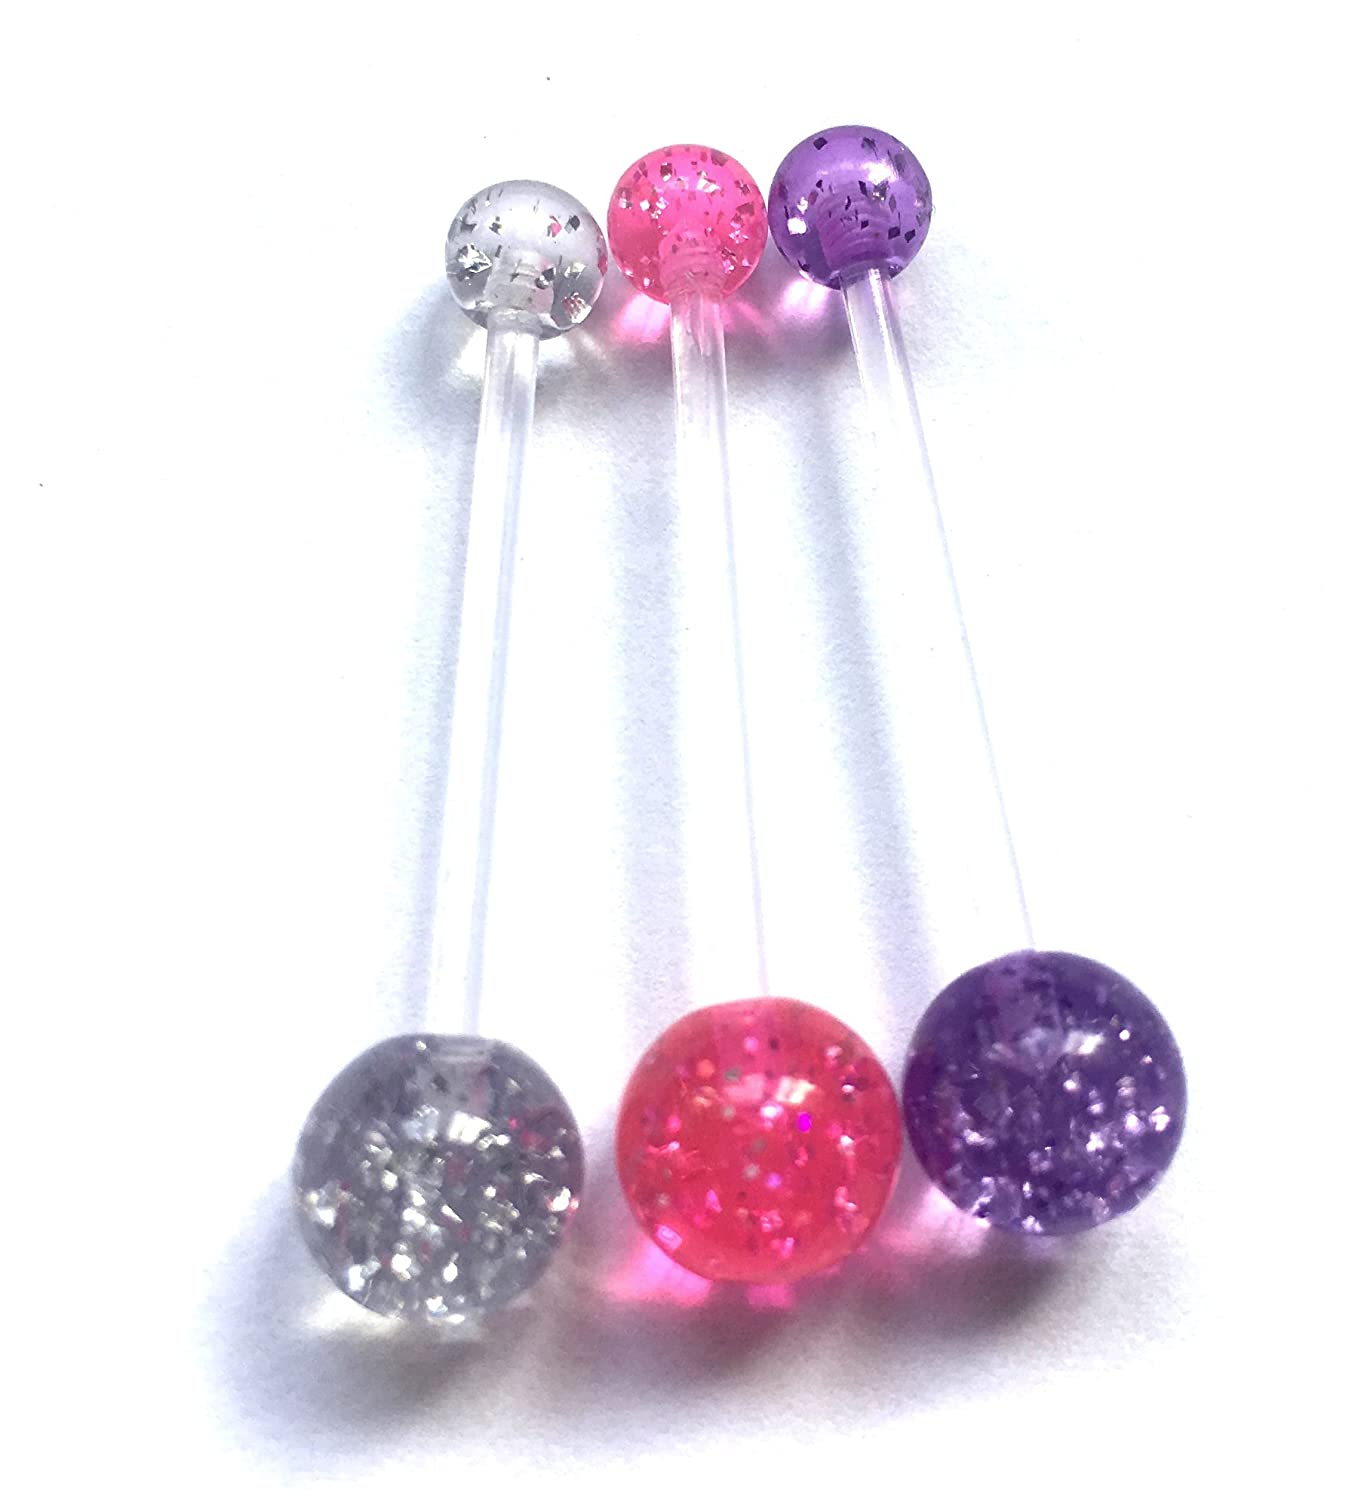 Loving My Bump Set 3 Glitter Pregnancy Maternity Belly Navel Bar Bars button ring retainer Flexible Glitter choose a colour or Set of 3 or 4 (Clear pink purple)